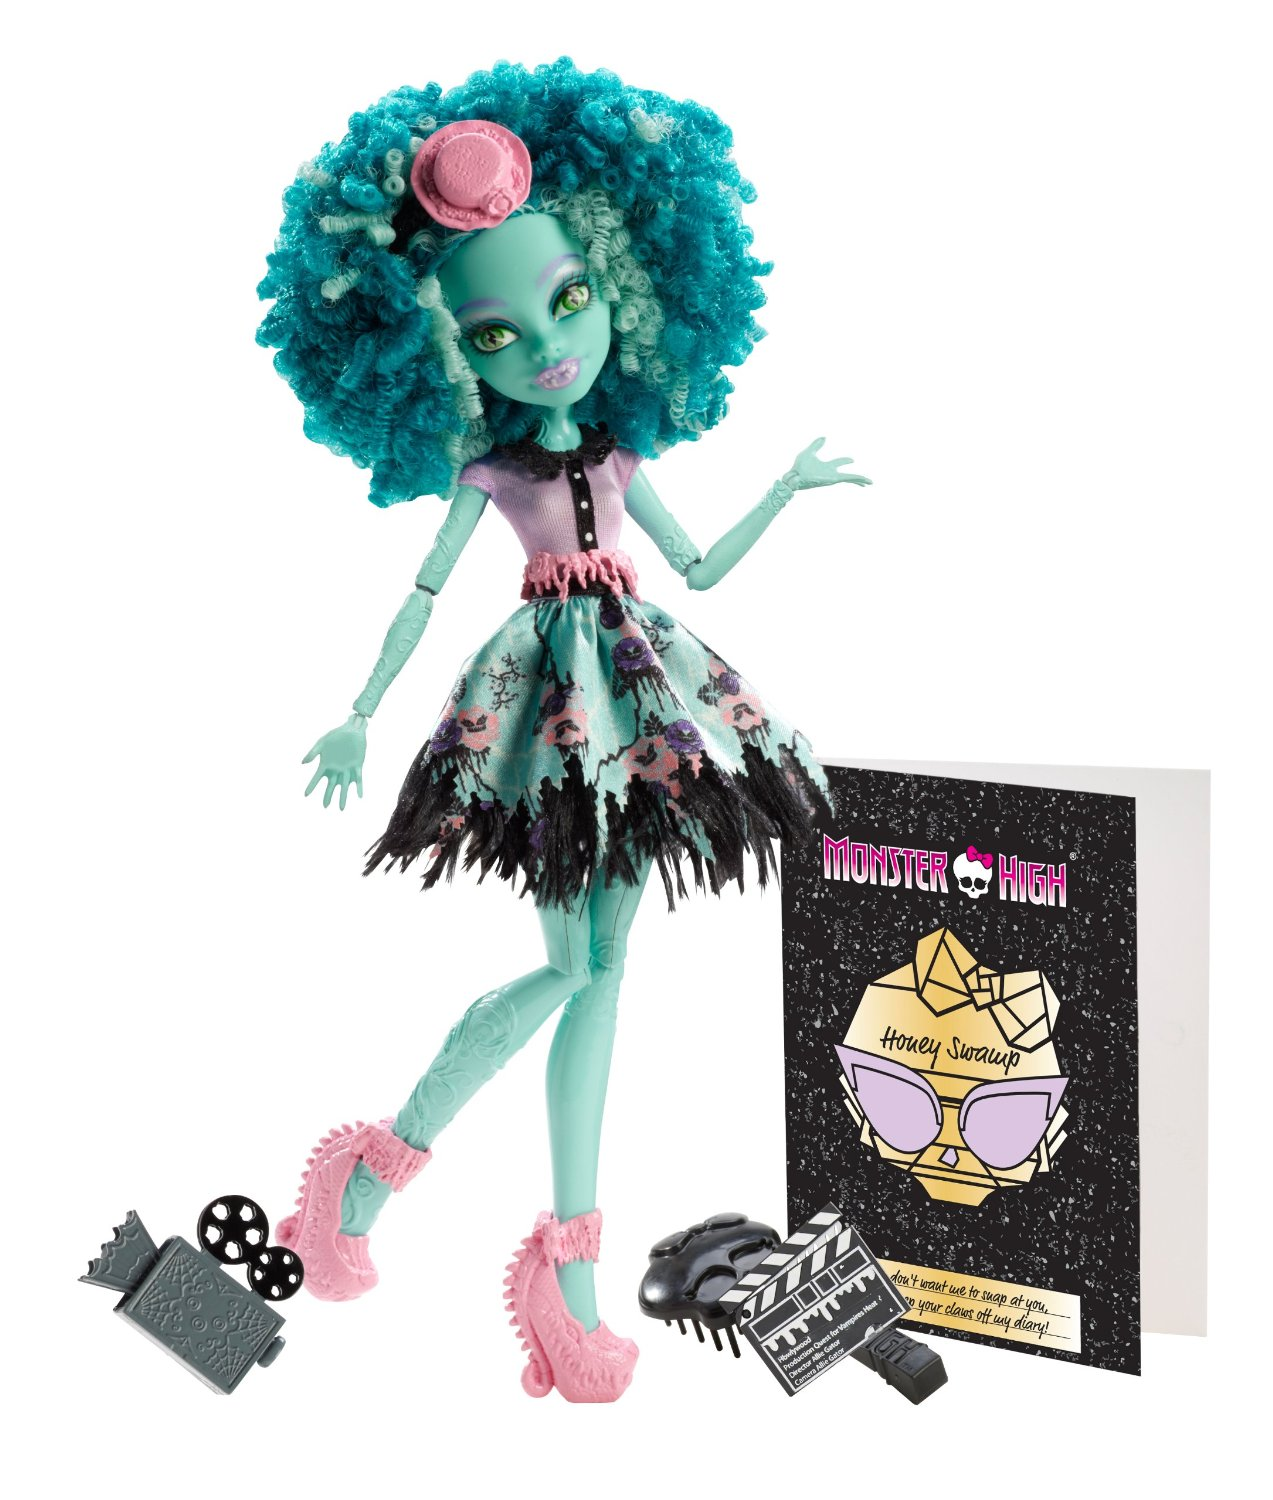 Mattel Monster High Howlywood Honey Swamp